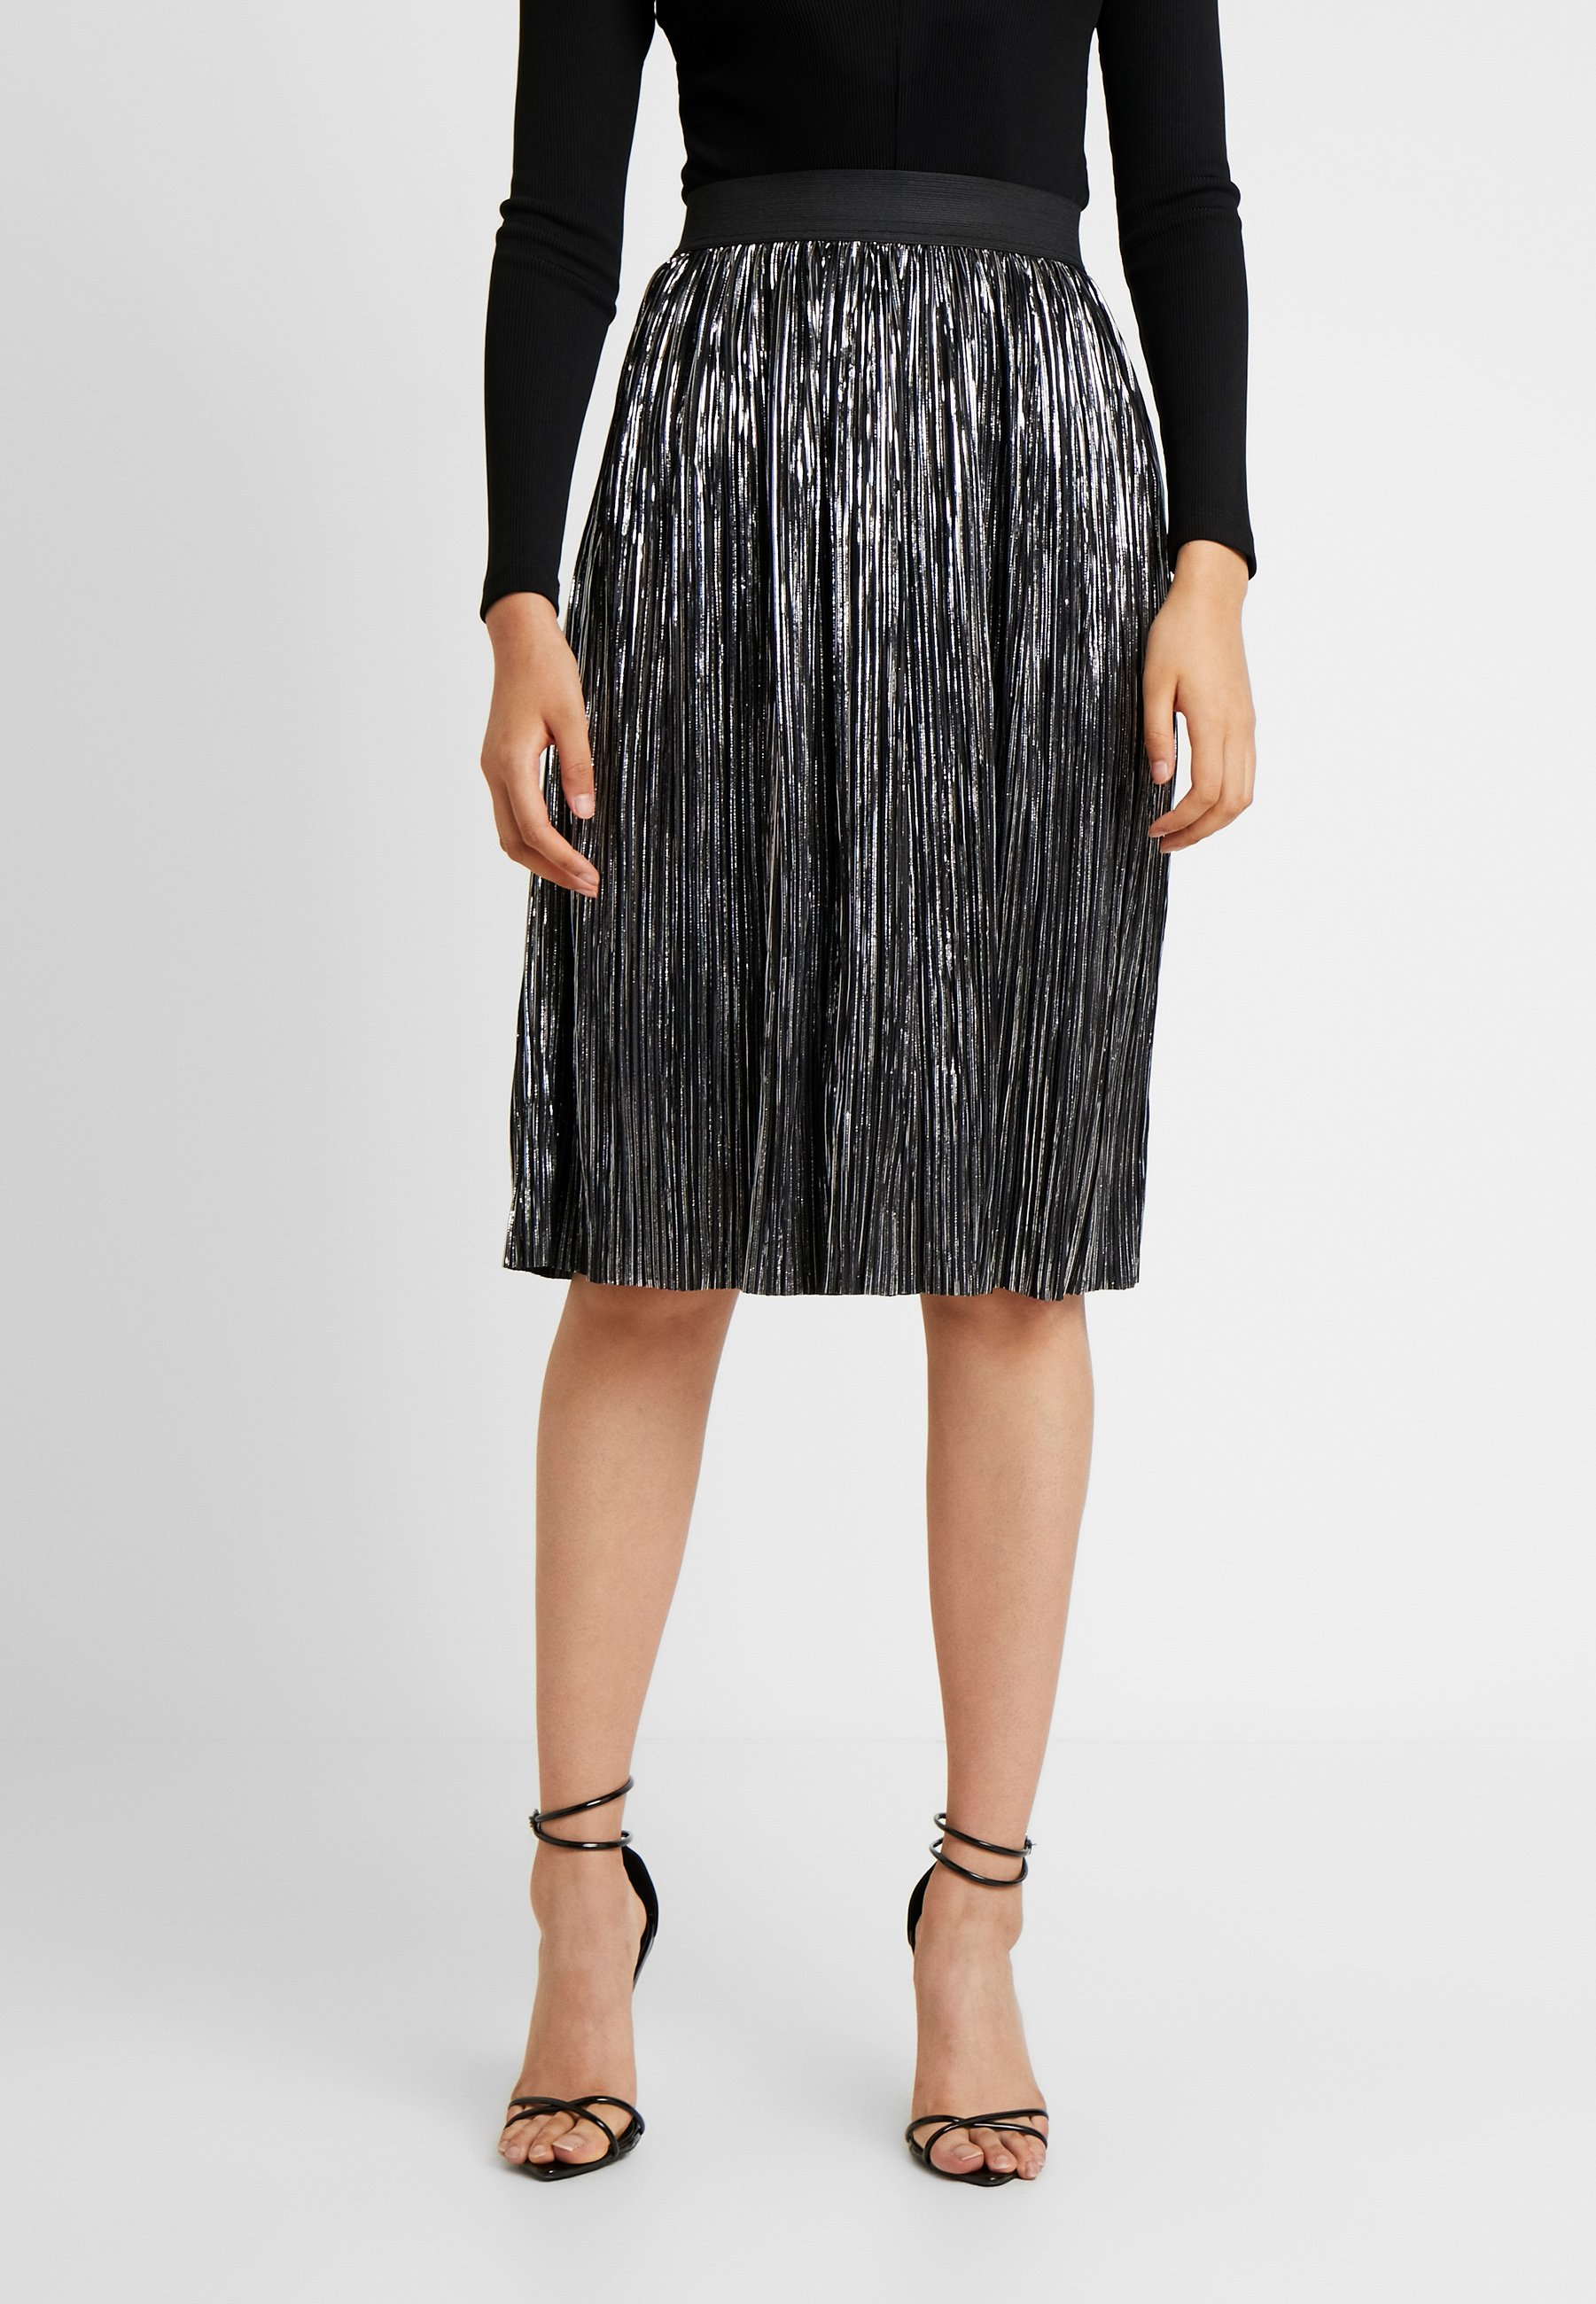 Noisy Tall silver NMKISS SKIRTJupe May PLEATED plissée lFK1JcT3